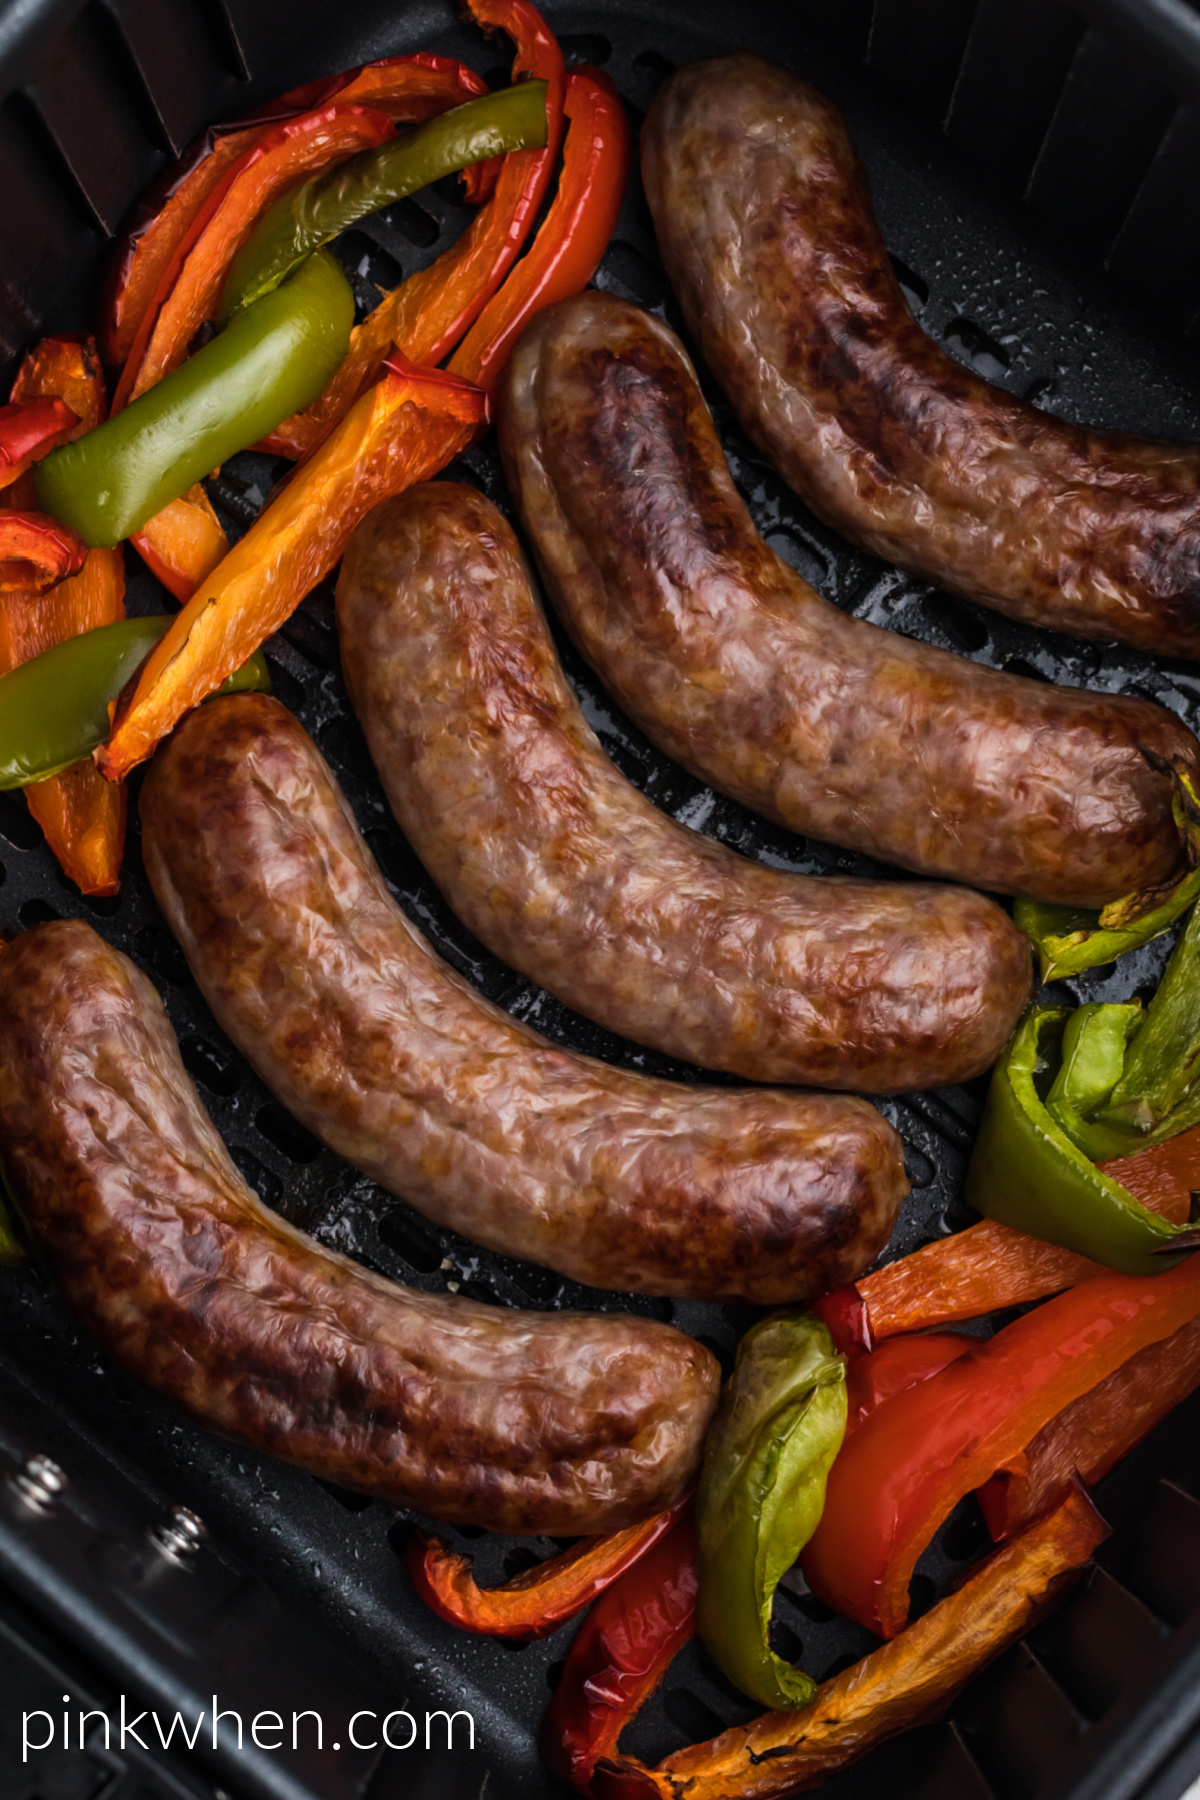 Cooked brats and bell peppers in the basket of the air fryer.